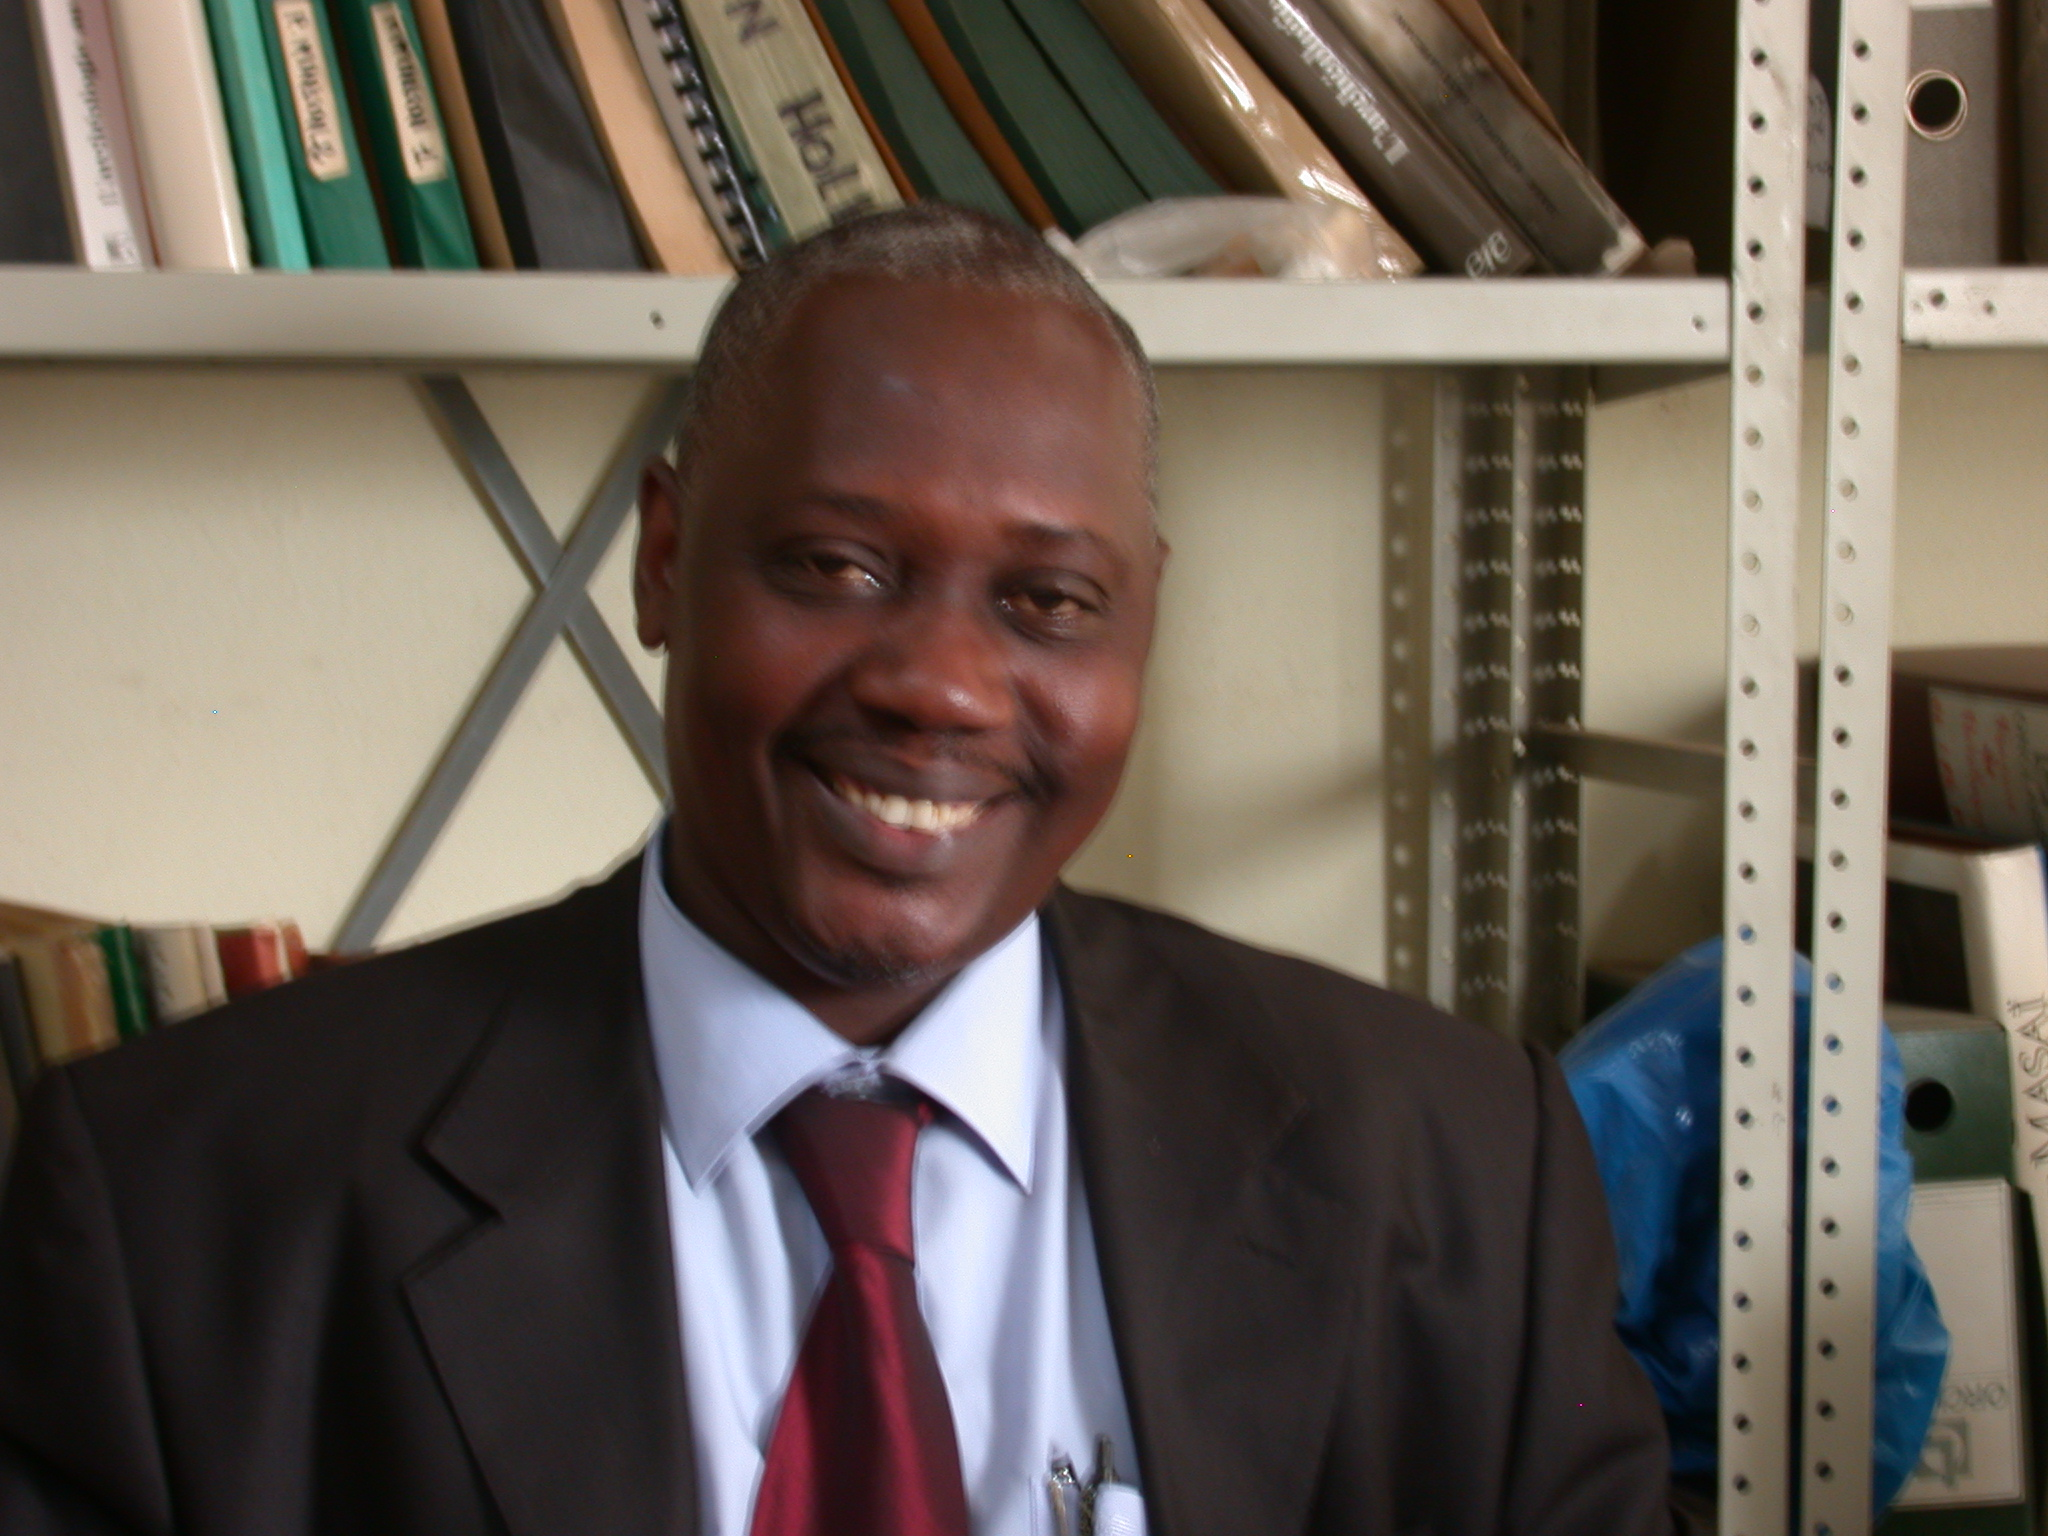 Hamady Bocoum, Minister of Culture in Senegal and Researcher at the Institut Fondamental de l Afrique Noire, IFAN, University of Cheikh Anta Diop